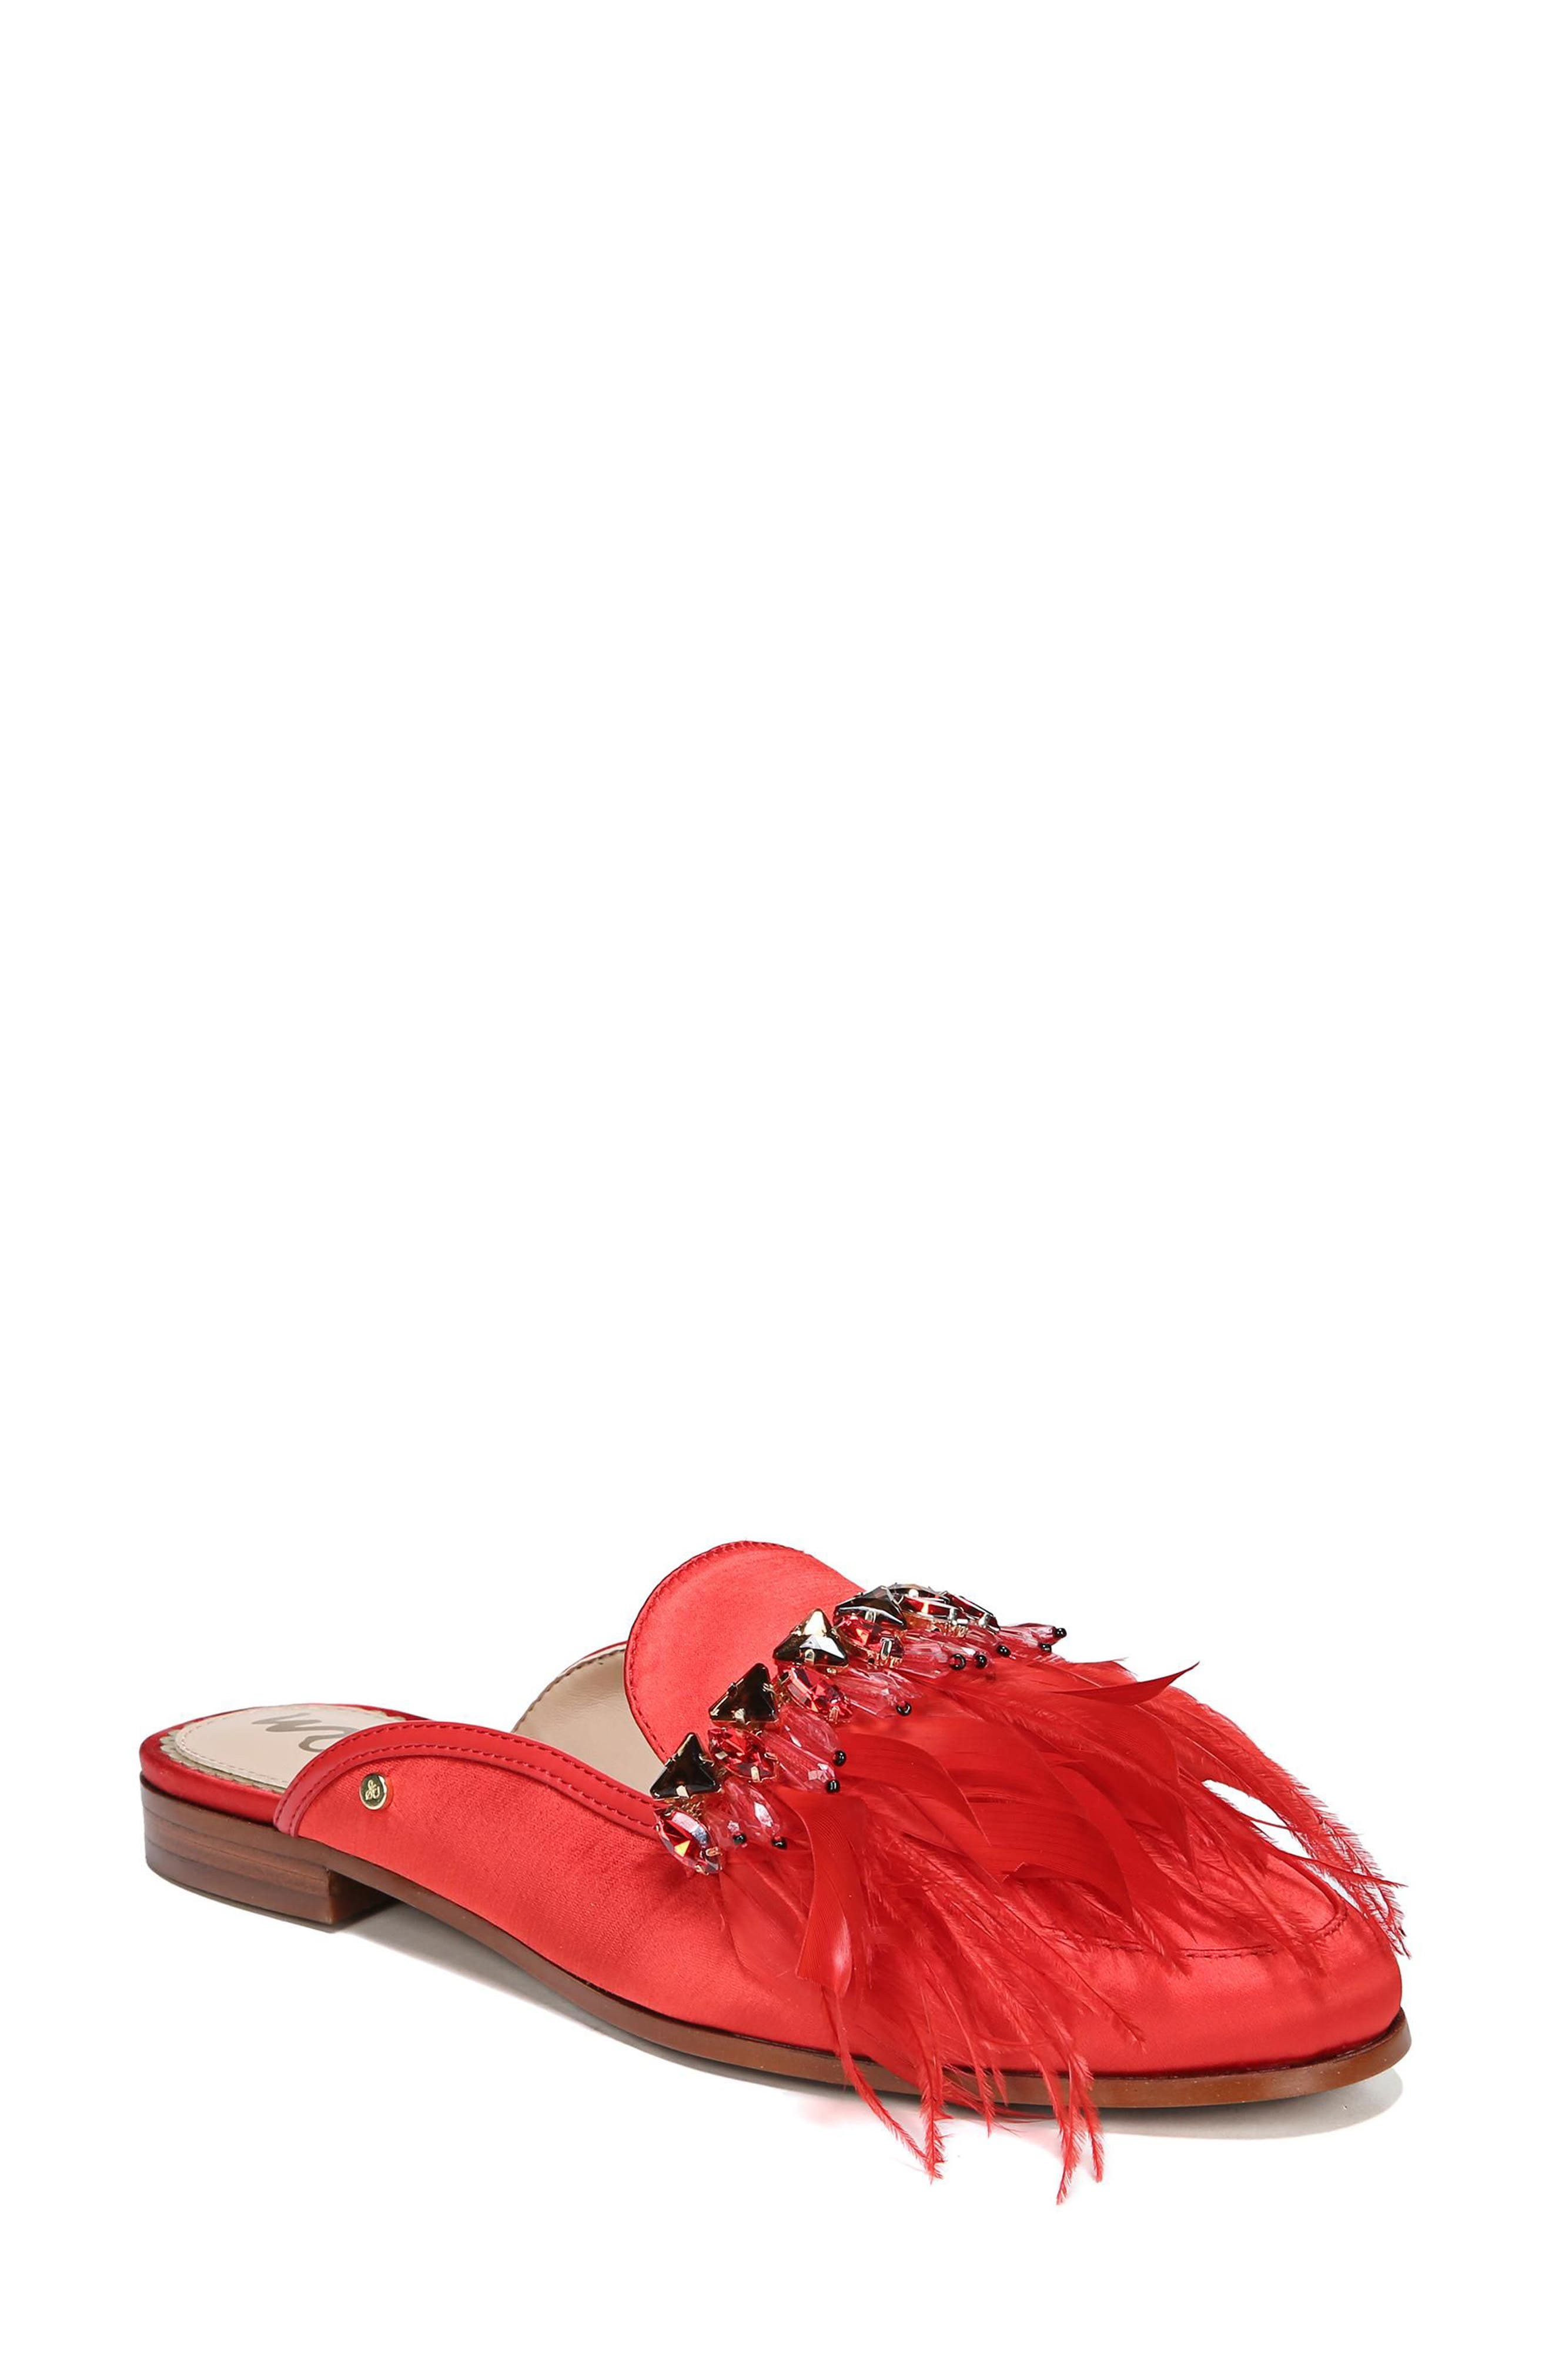 Alternate Image 1 Selected - Sam Edelman Landis Feather Mule (Women)